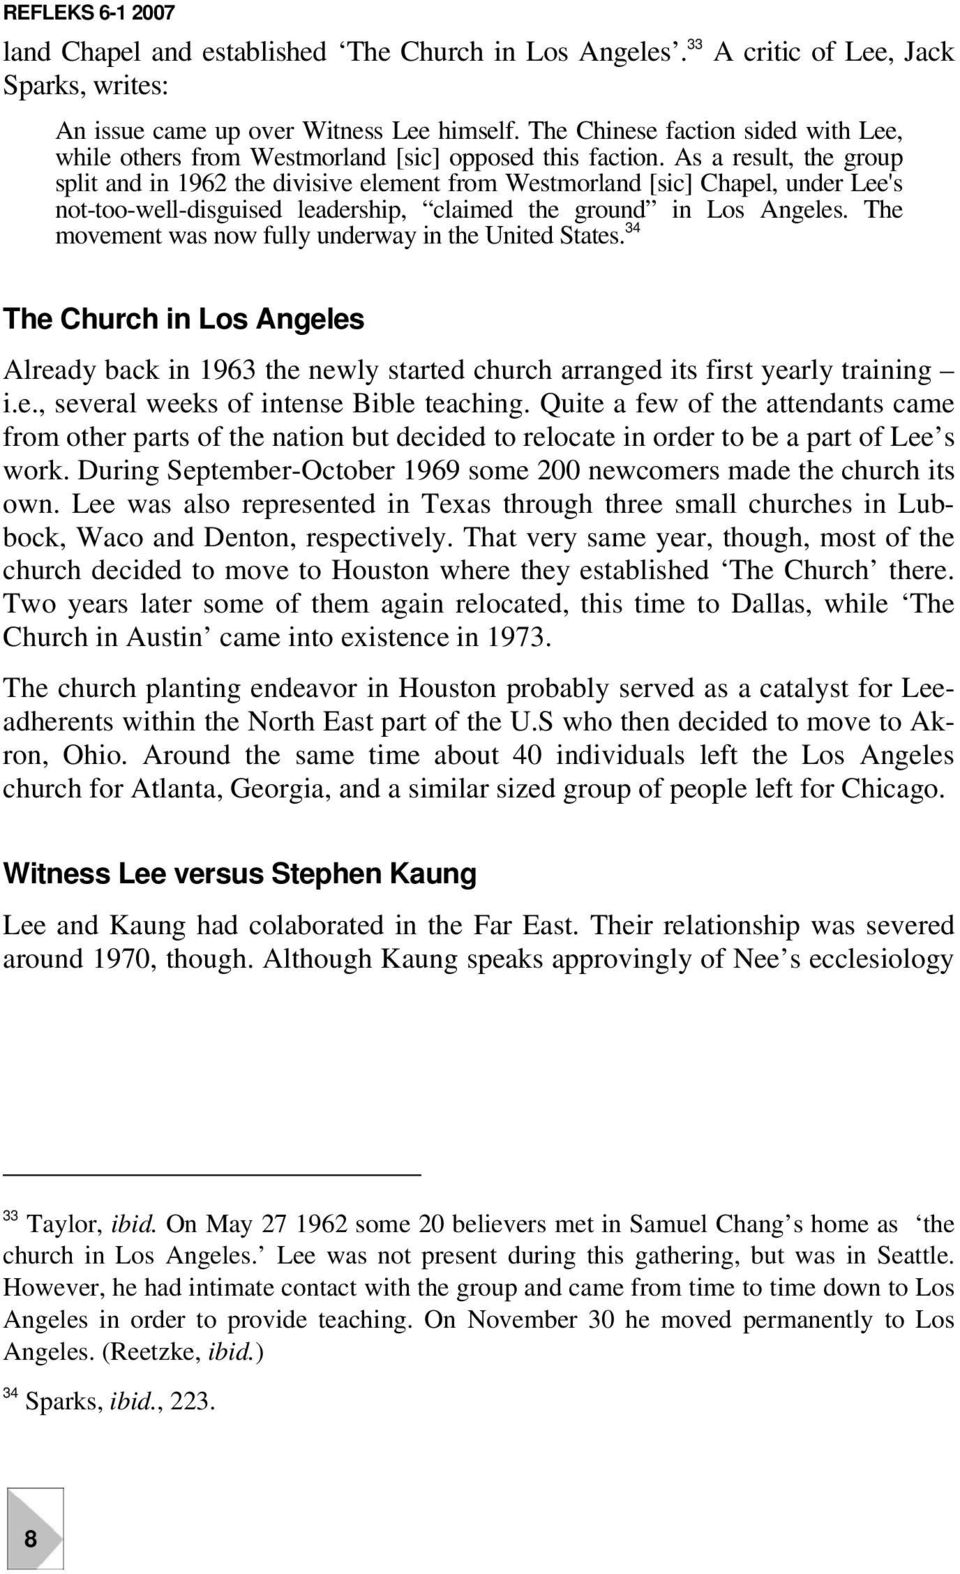 As a result, the group split and in 1962 the divisive element from Westmorland [sic] Chapel, under Lee's not-too-well-disguised leadership, claimed the ground in Los Angeles.